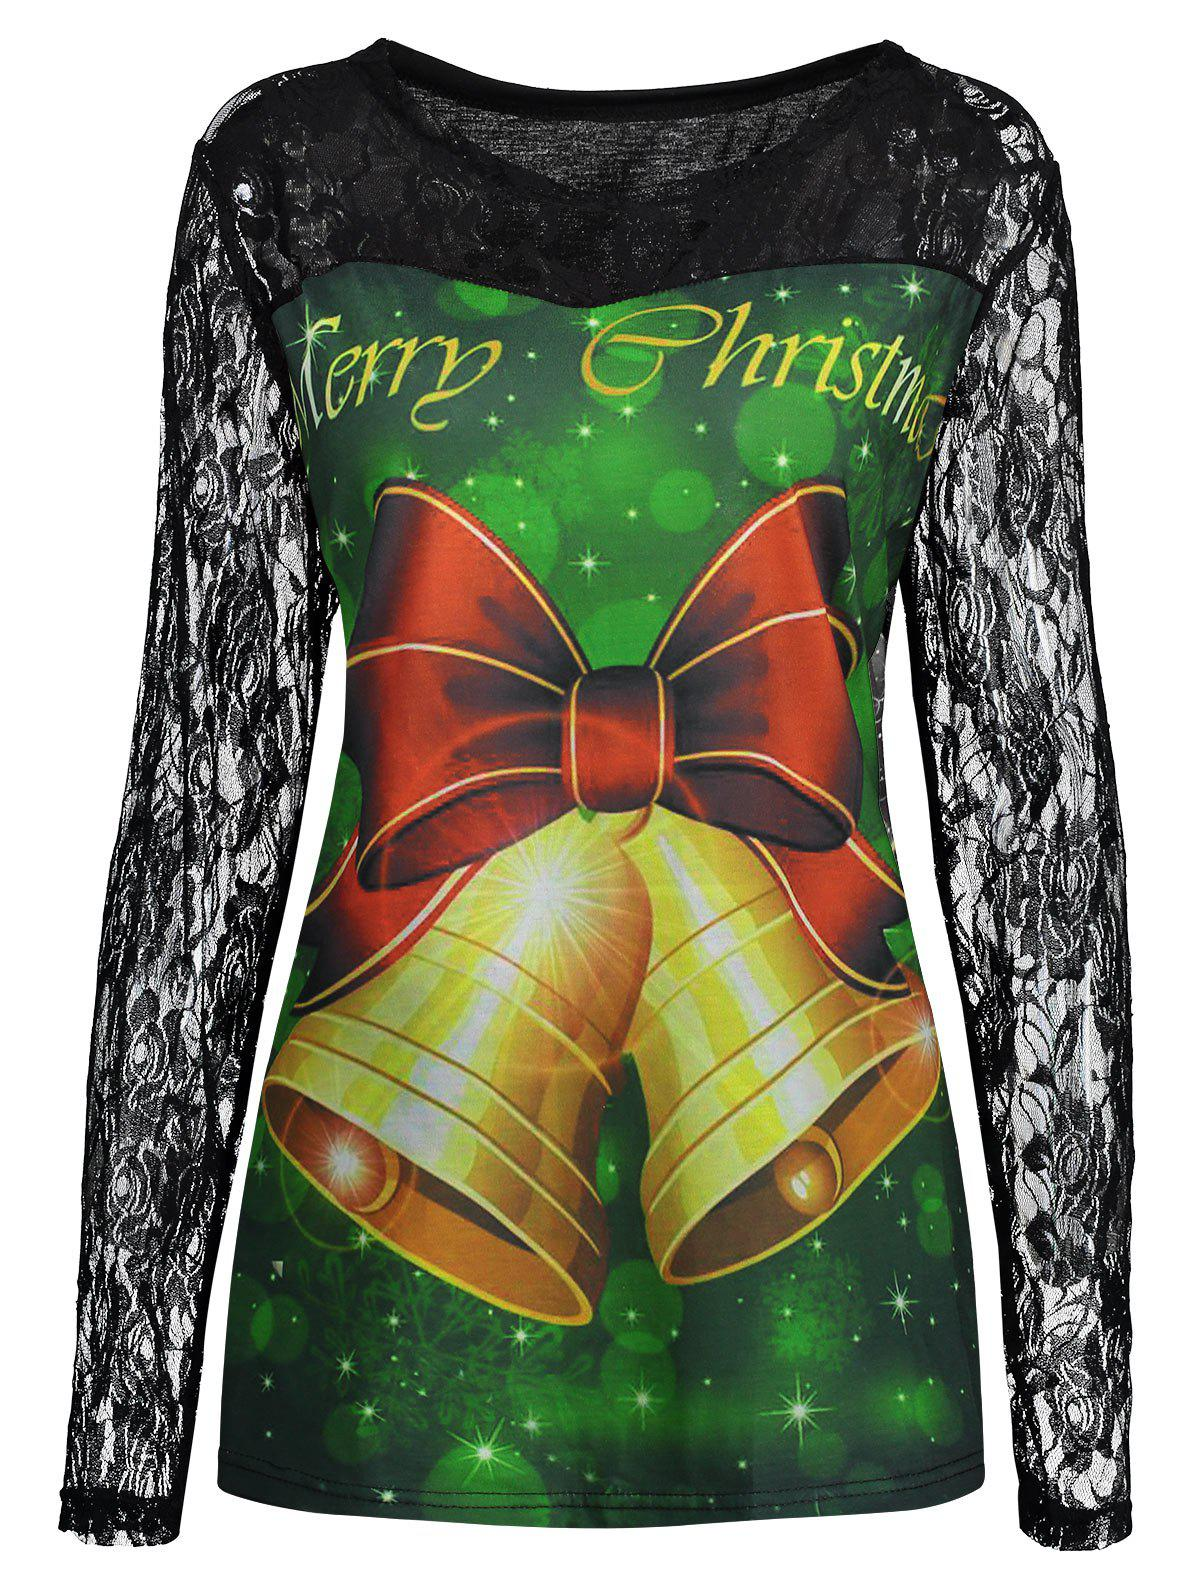 Plus Size Lace Yoke Merry Christmas Bell T-shirtWOMEN<br><br>Size: 4XL; Color: BLACK; Material: Cotton,Polyester; Shirt Length: Regular; Sleeve Length: Full; Collar: Round Neck; Style: Fashion; Season: Fall; Embellishment: Lace; Pattern Type: Bowknot,Letter; Weight: 0.3500kg; Package Contents: 1 x T-shirt;